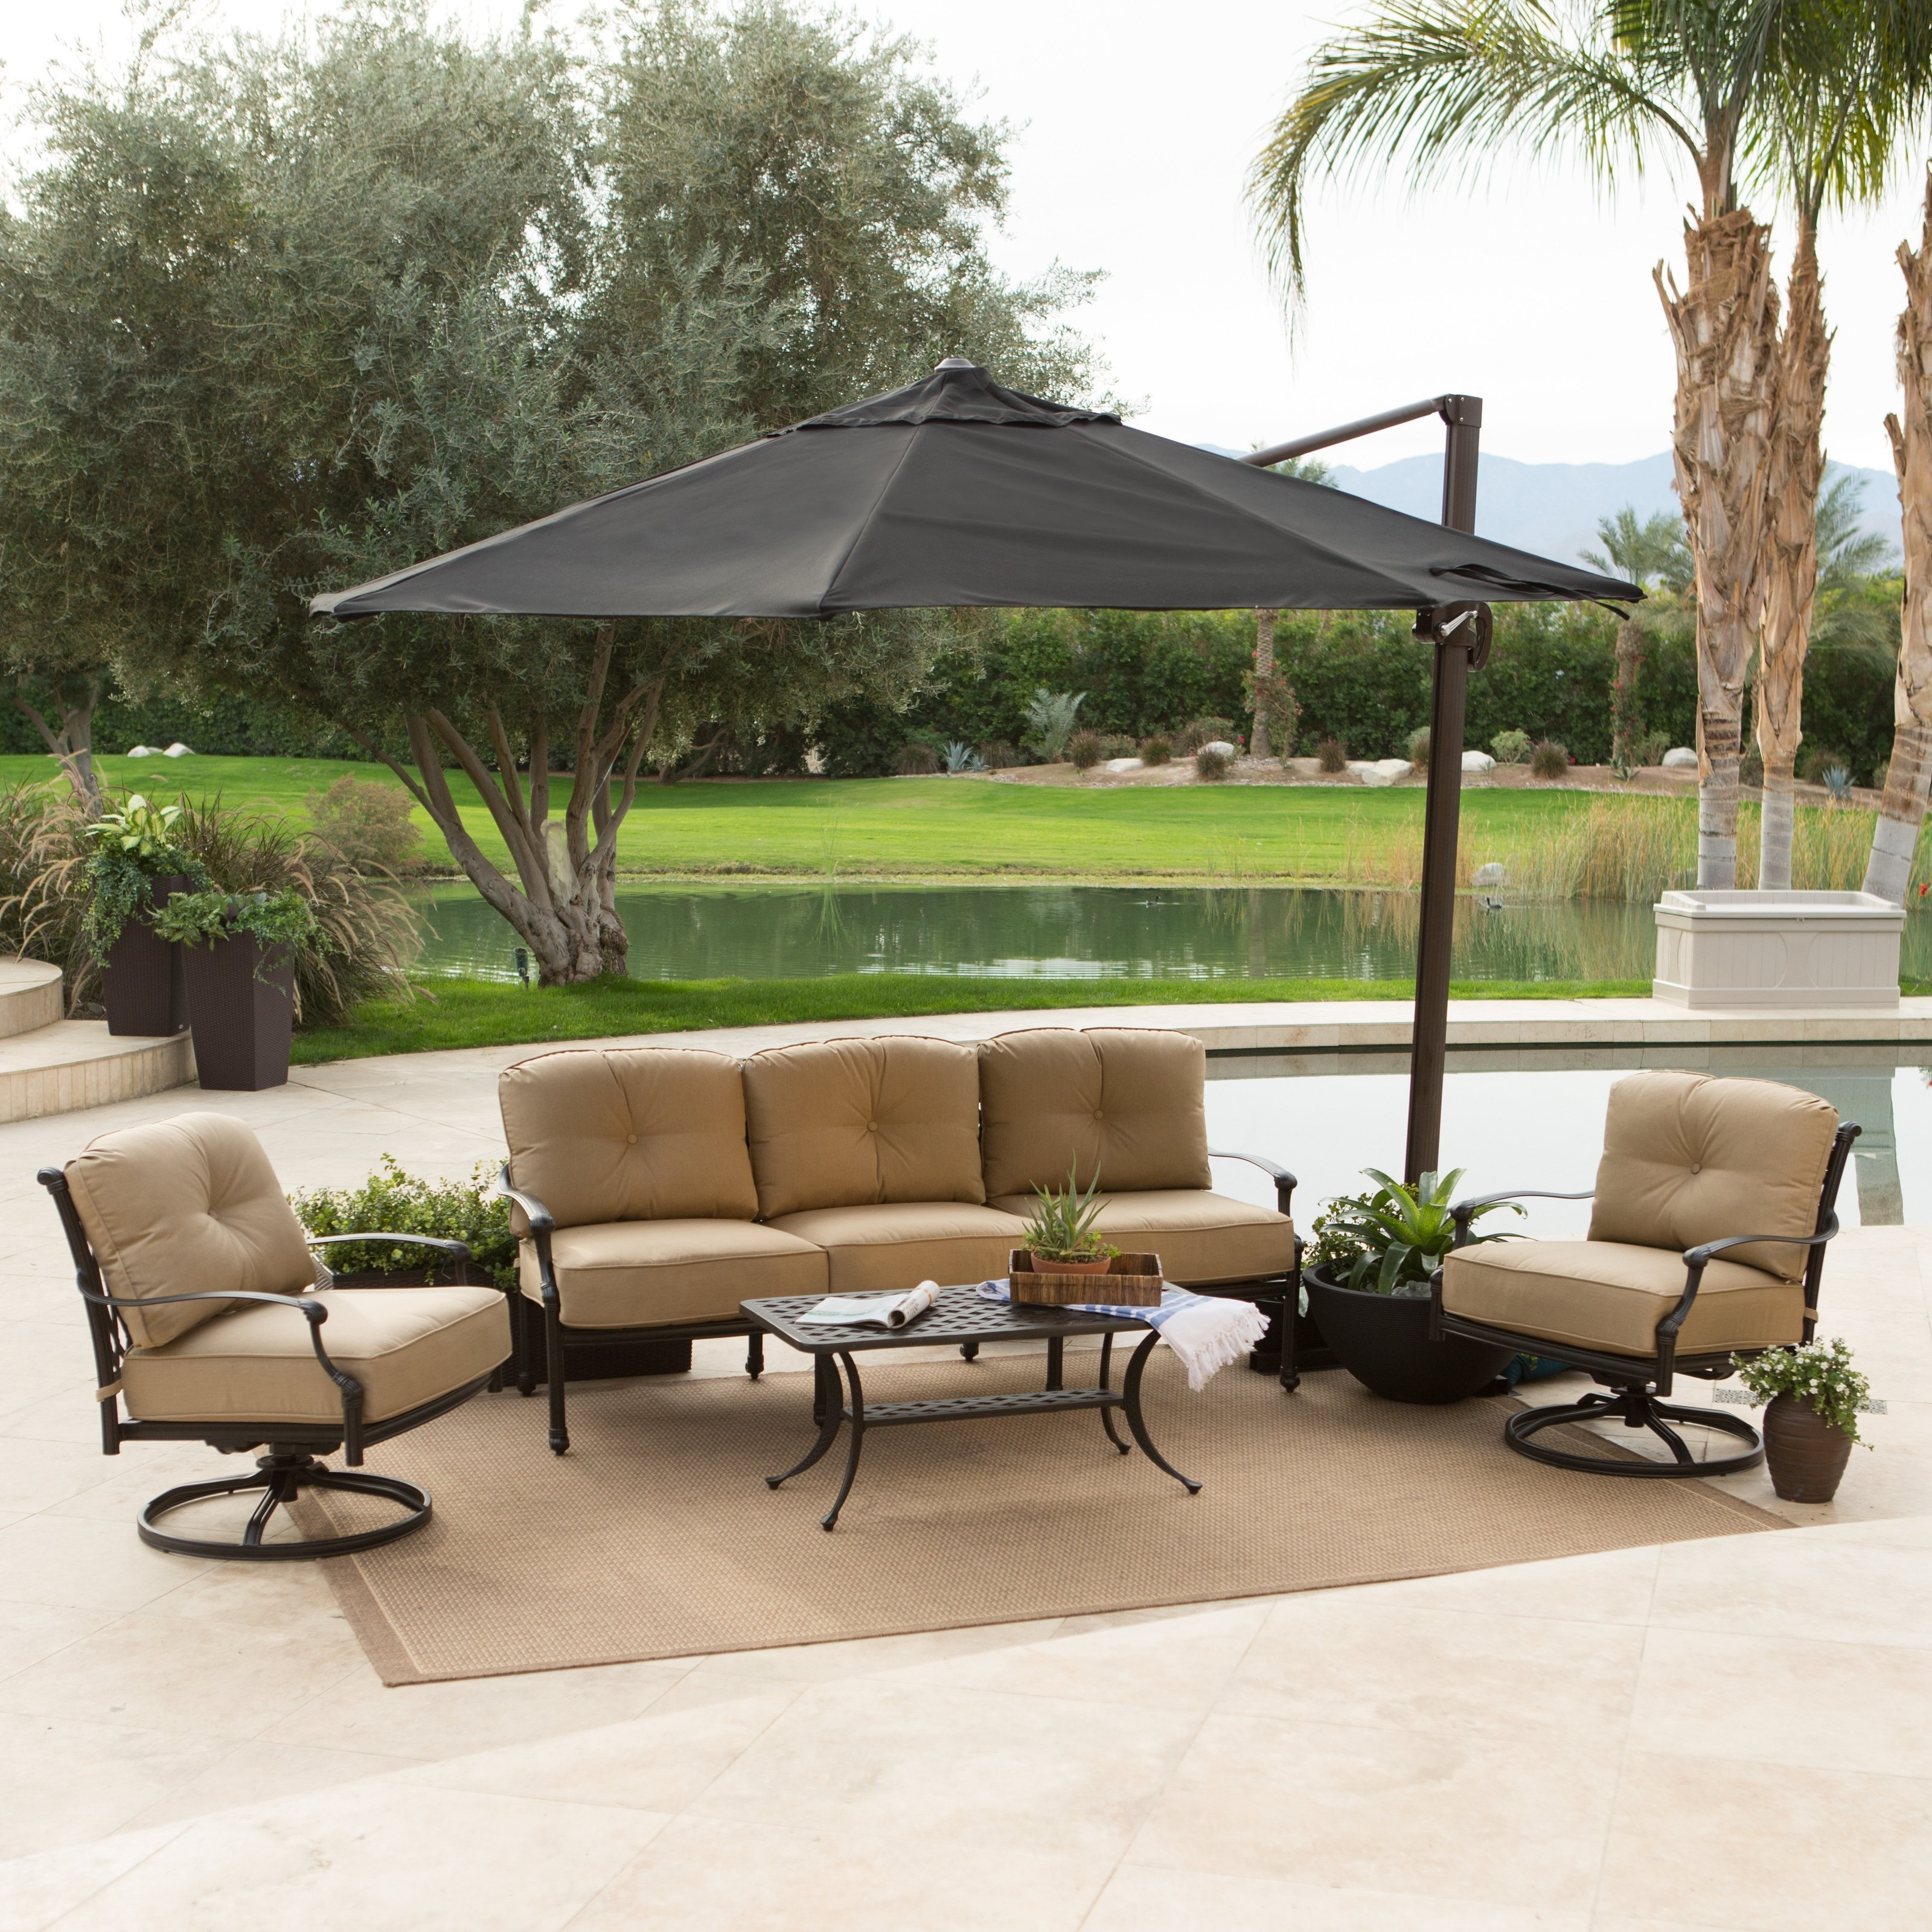 Most Recent Patio Deck Umbrellas In Cheerful Outdoor Patio Design With Chairs And Table Sets Protected (View 7 of 20)